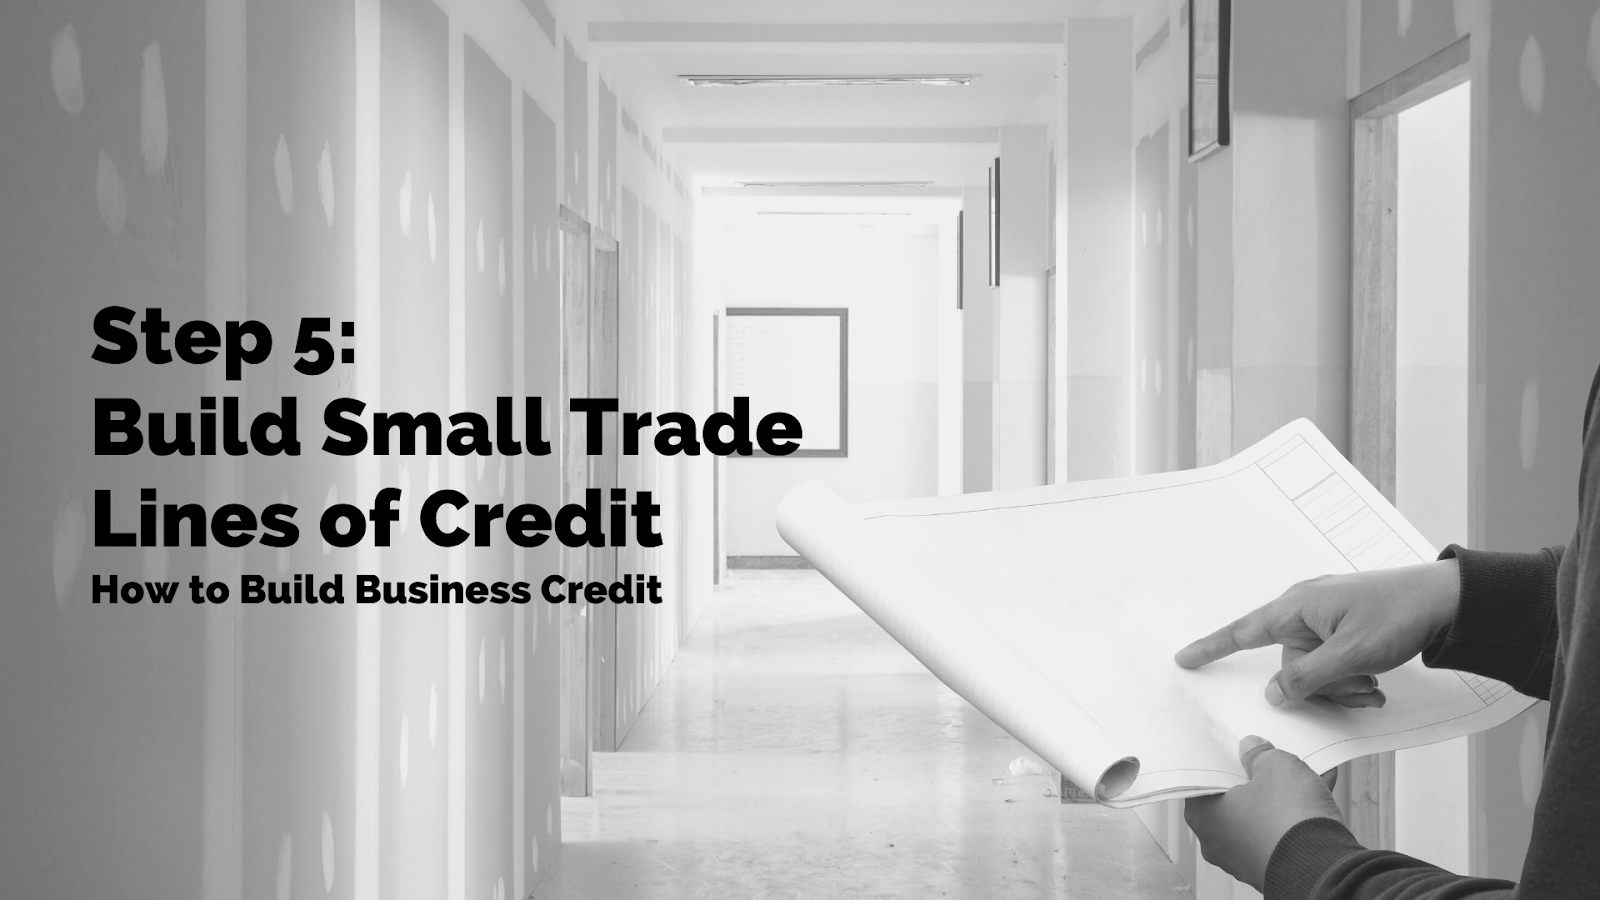 5. Build Small Trade Lines of Credit